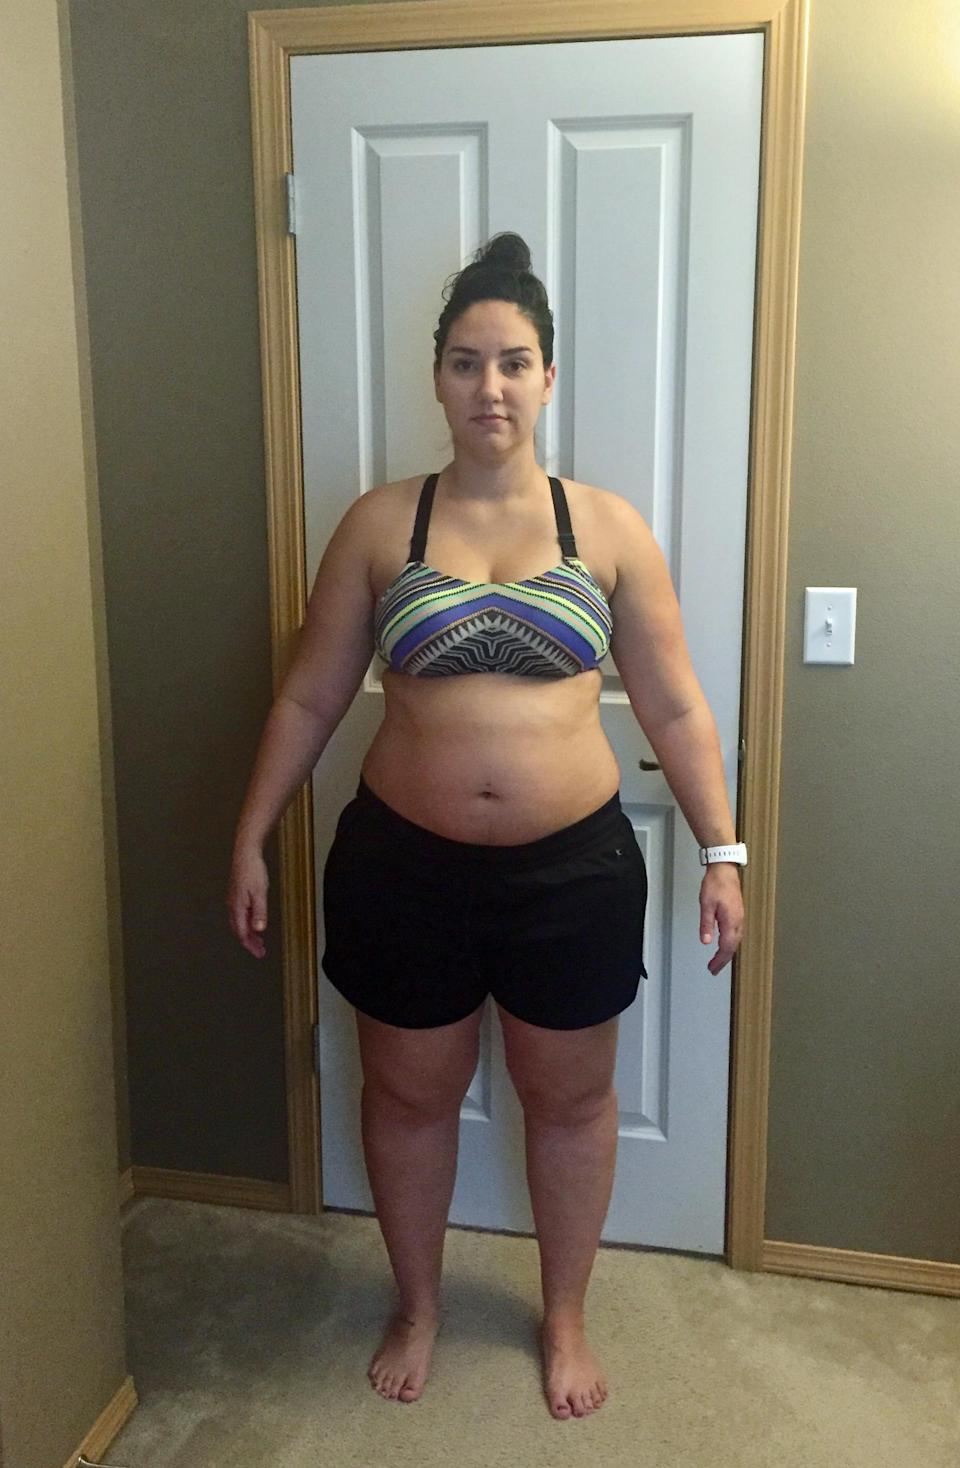 The mum weighed over 100kg after two pregnancies. Photo: Caters News